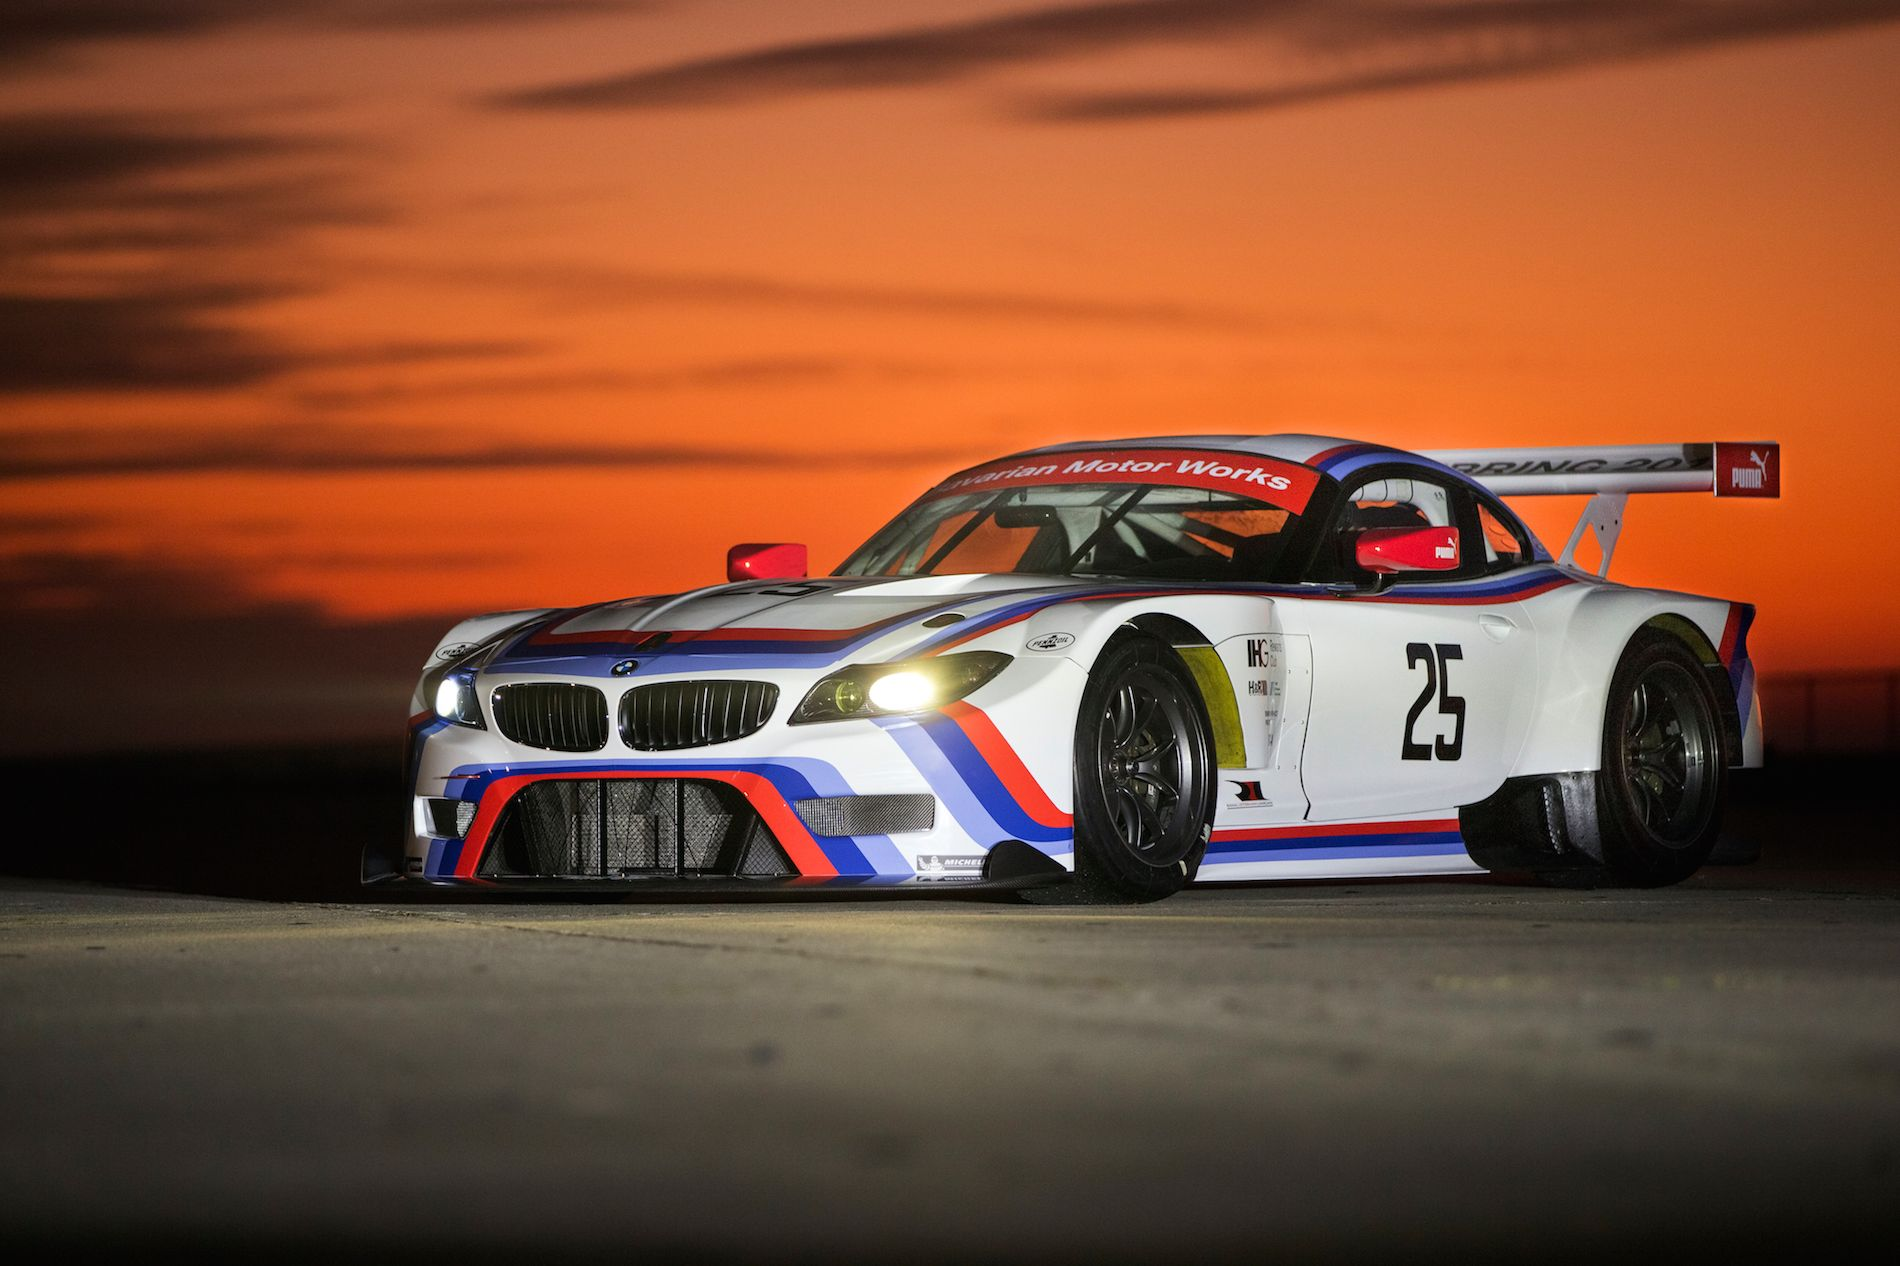 Bmw z4 gtlm csl homage livery unveiled at 2015 amelia